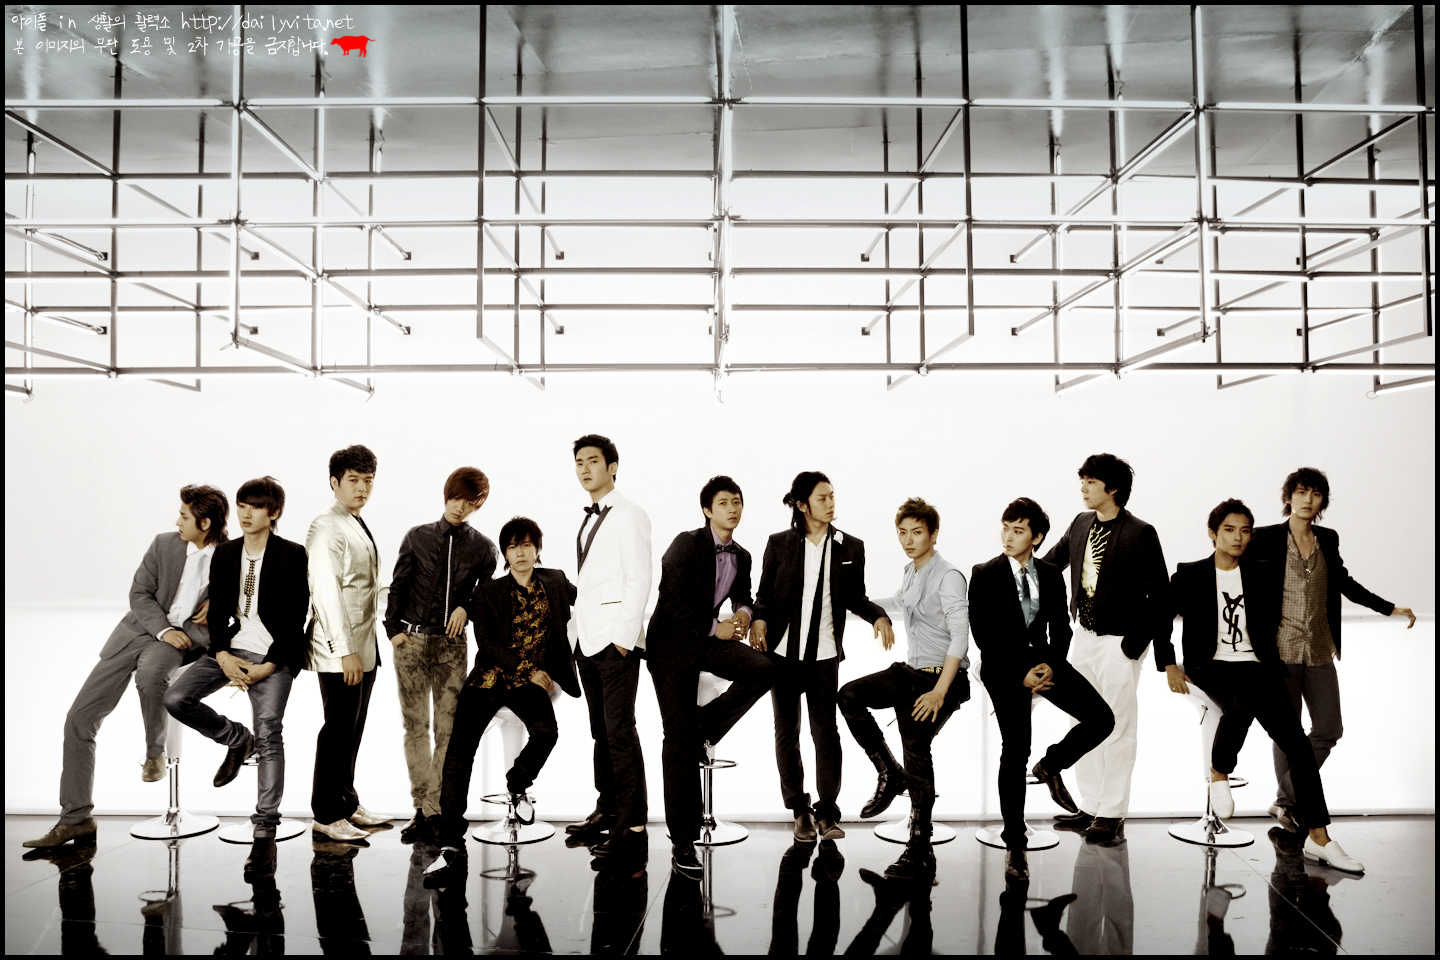 http://stressedkpopfan.files.wordpress.com/2009/09/super-junior.jpg